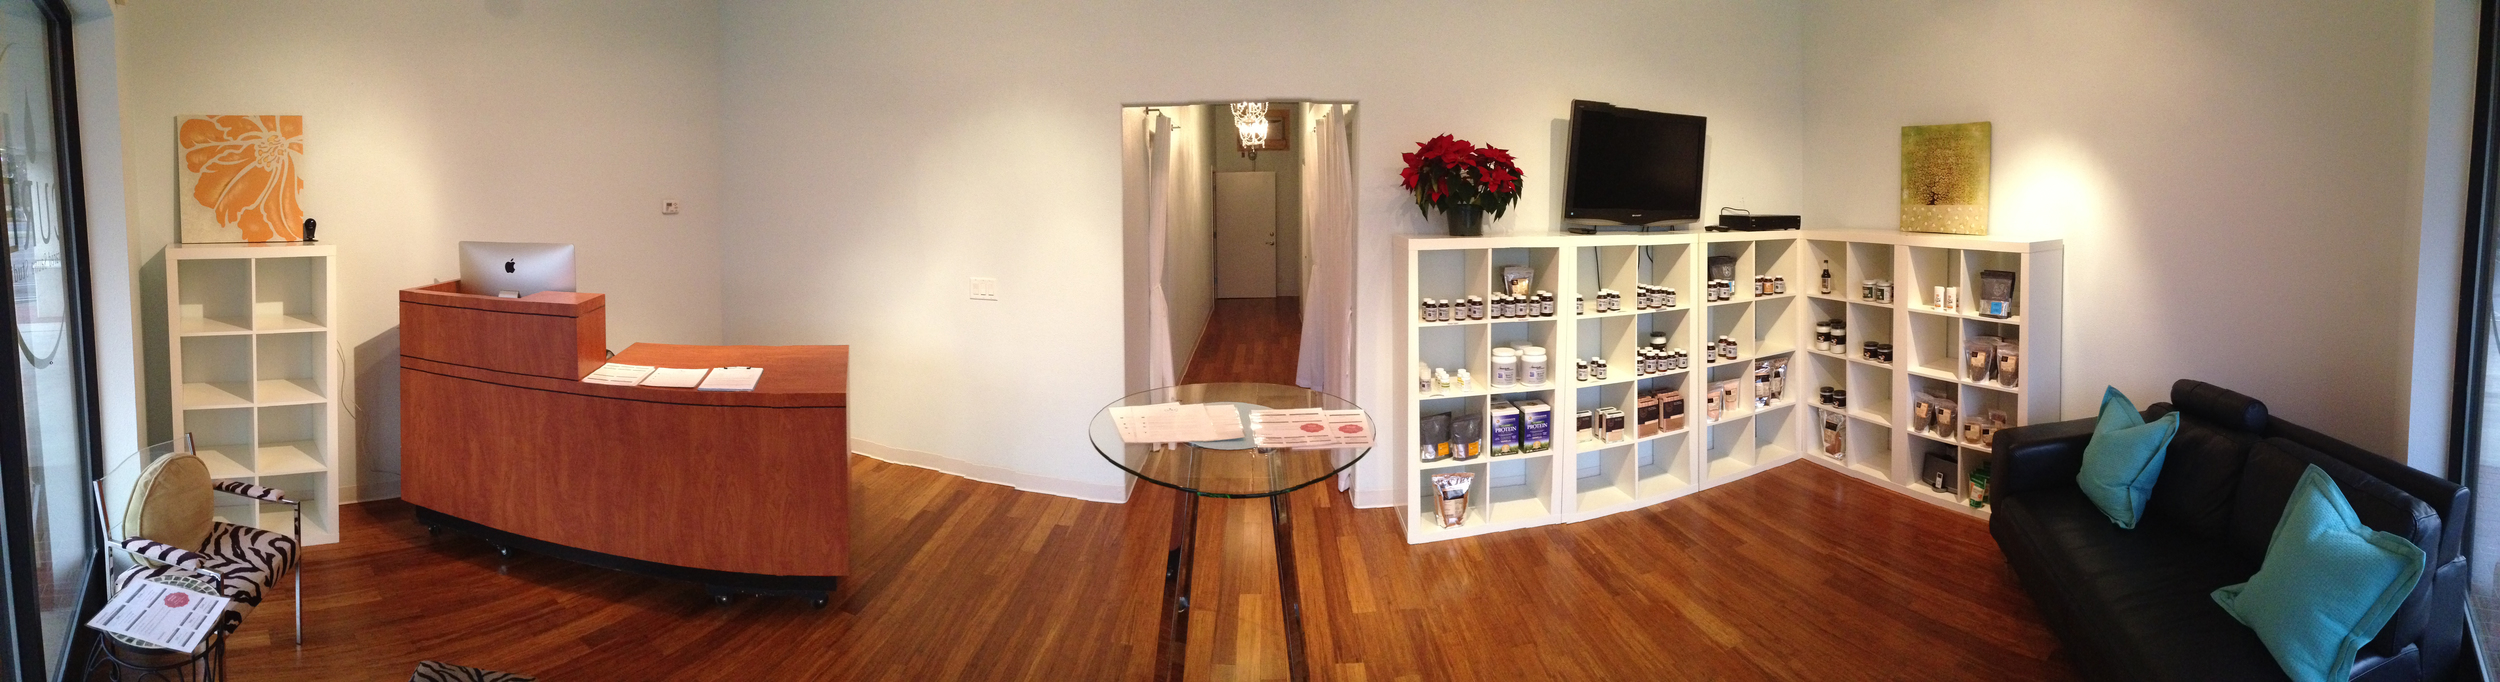 Welcome to Cure Infrared Sauna Studio!